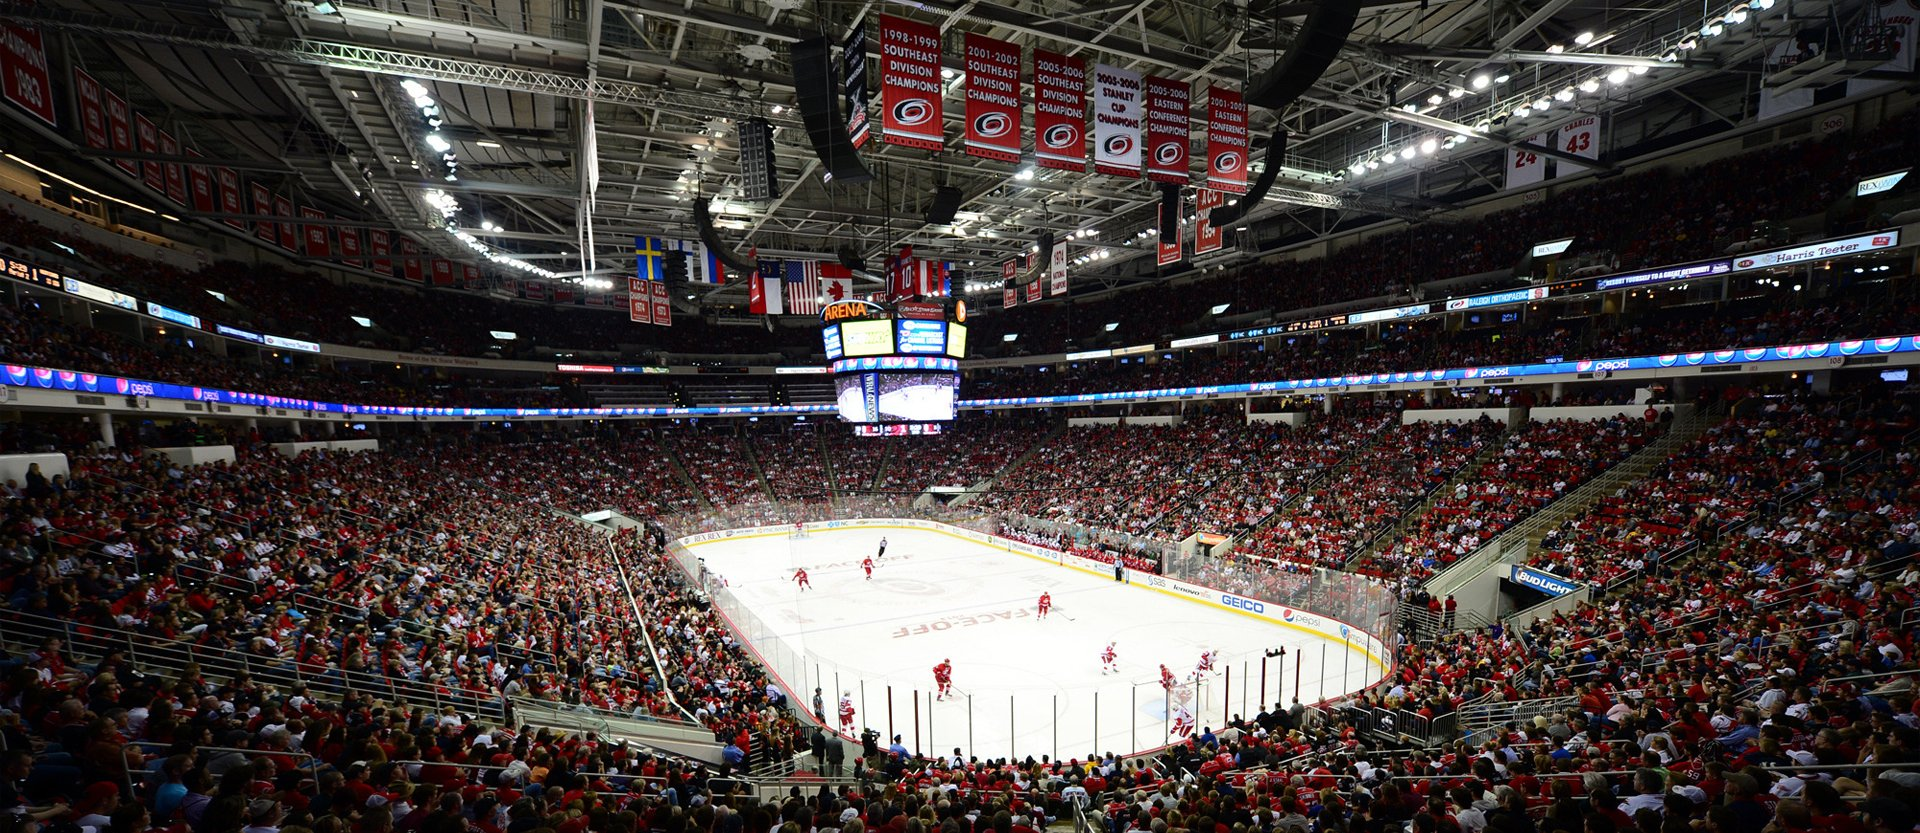 Carolina Hurricanes arena